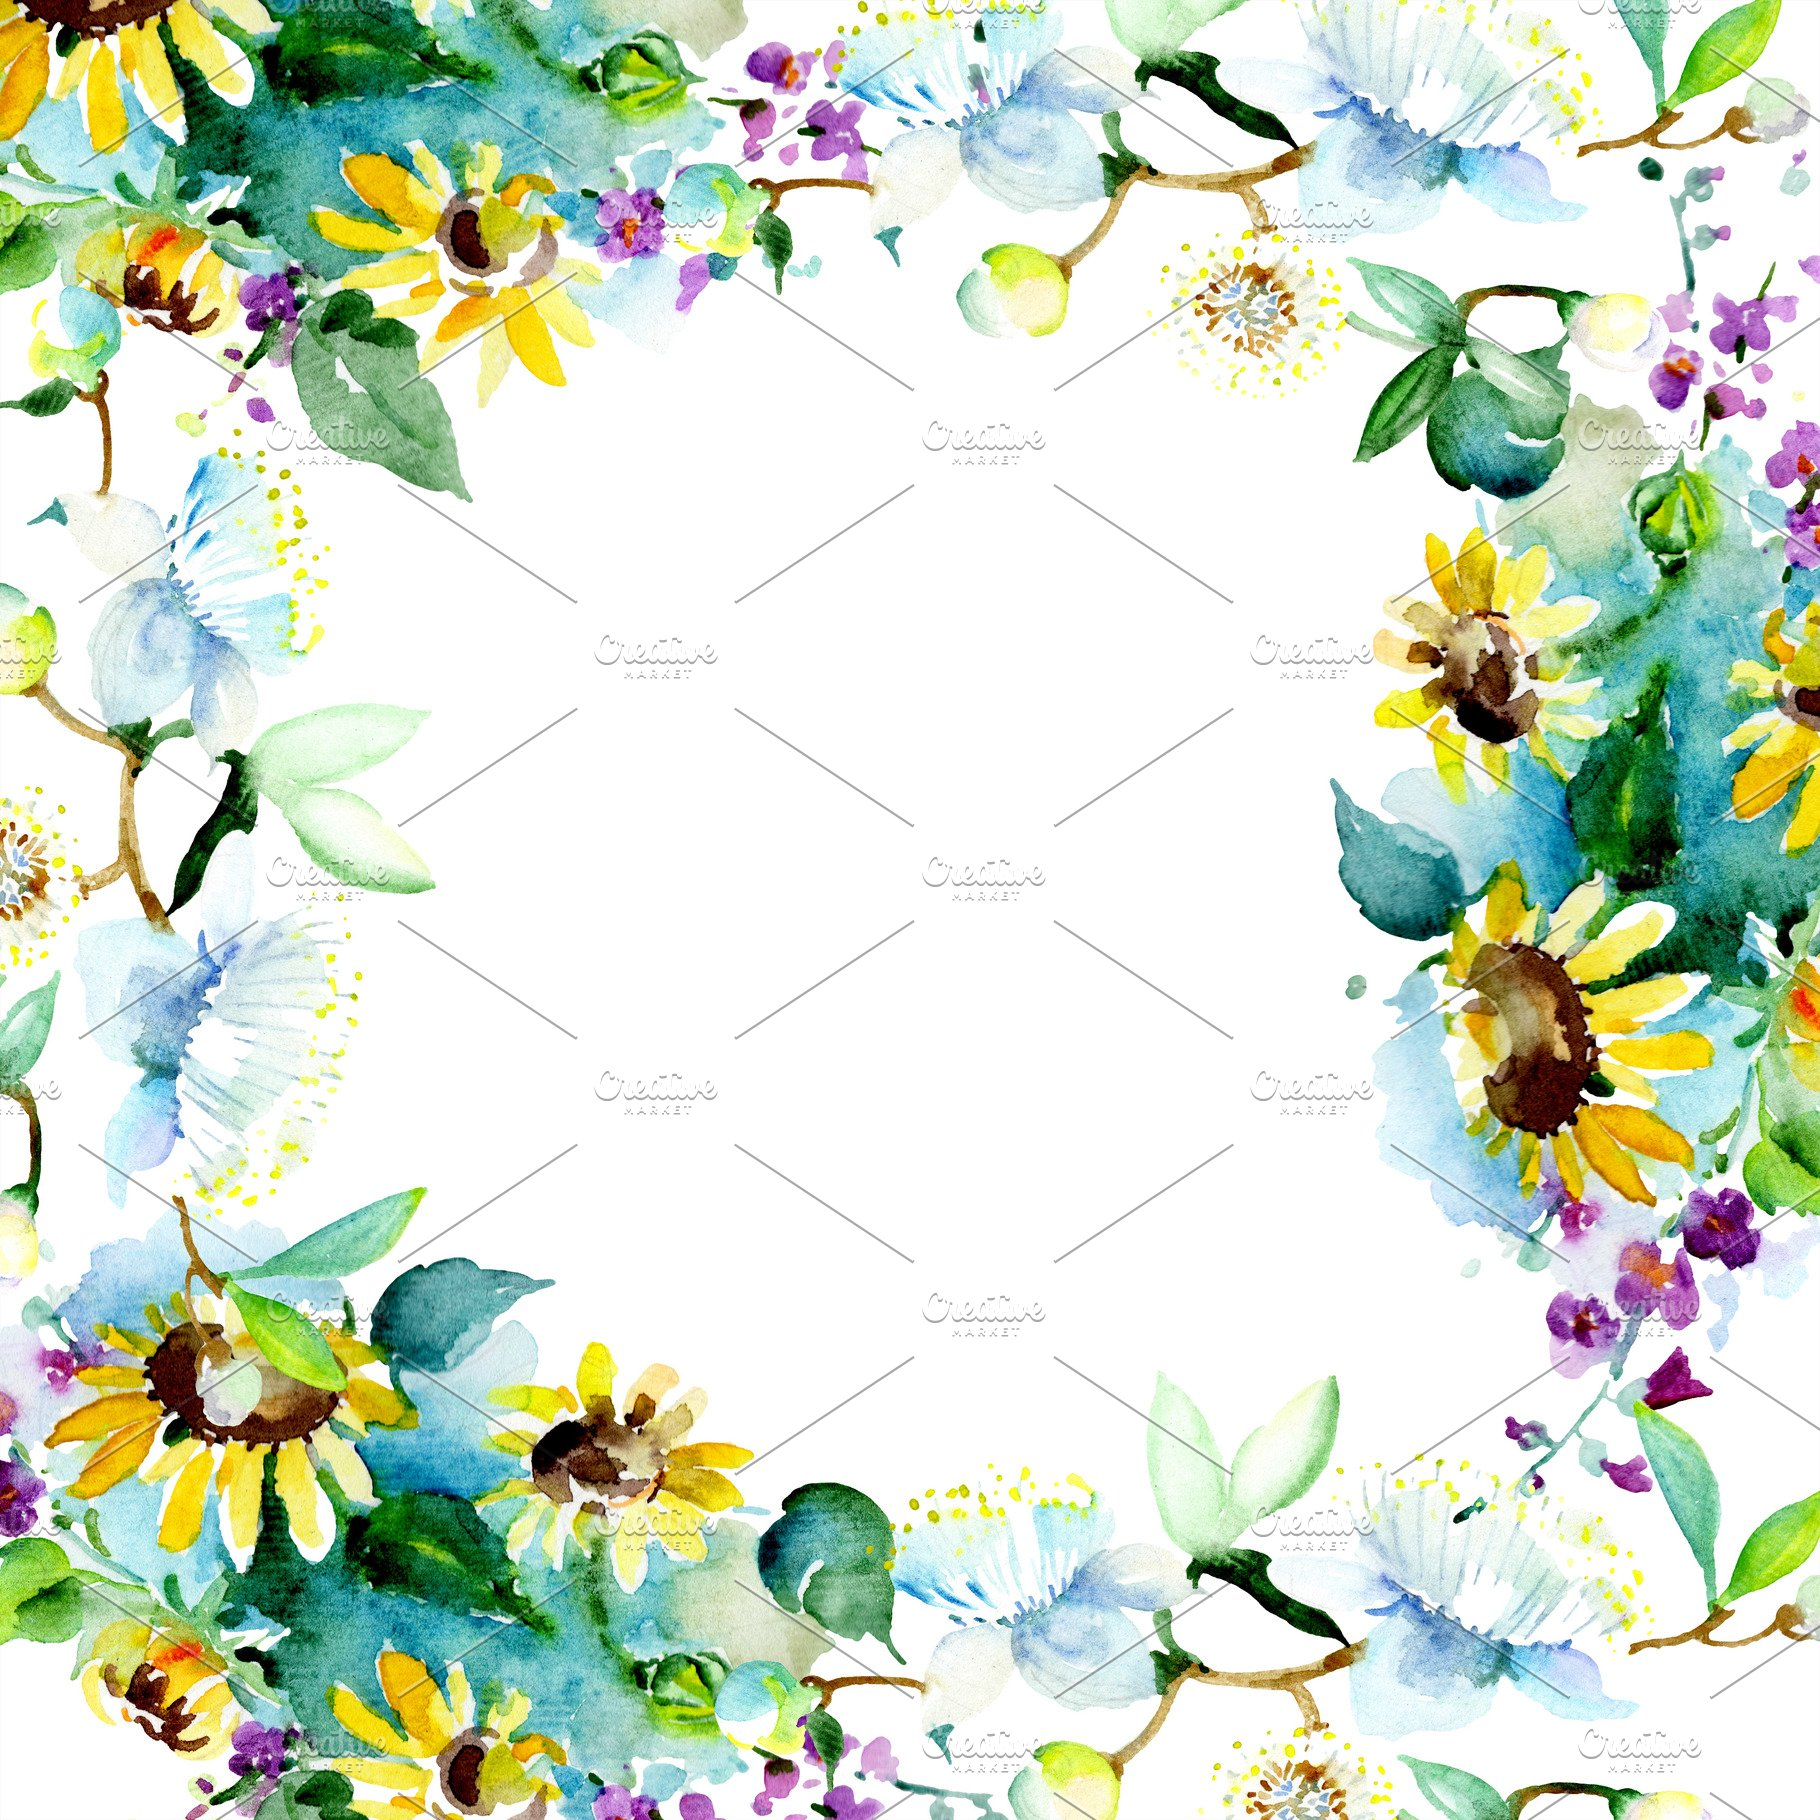 Bouquet Flower Watercolor Background High Quality Holiday Stock